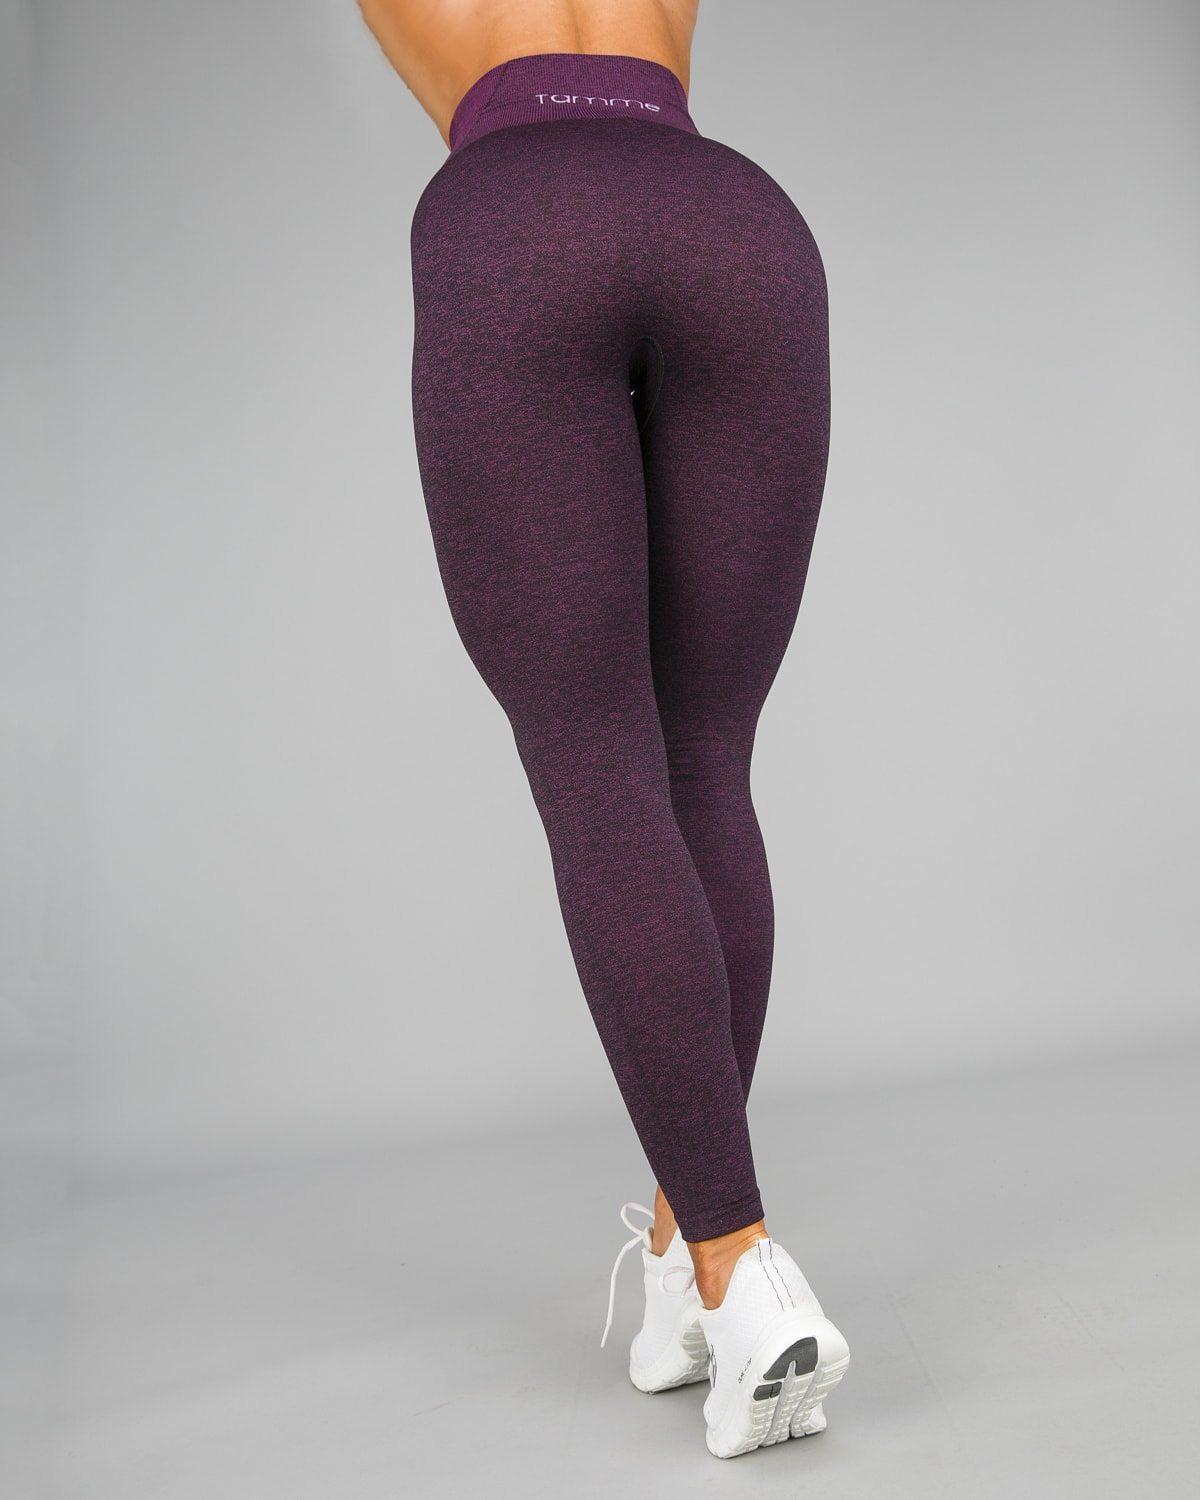 FAMME Lavender Seamless Essential Tights3